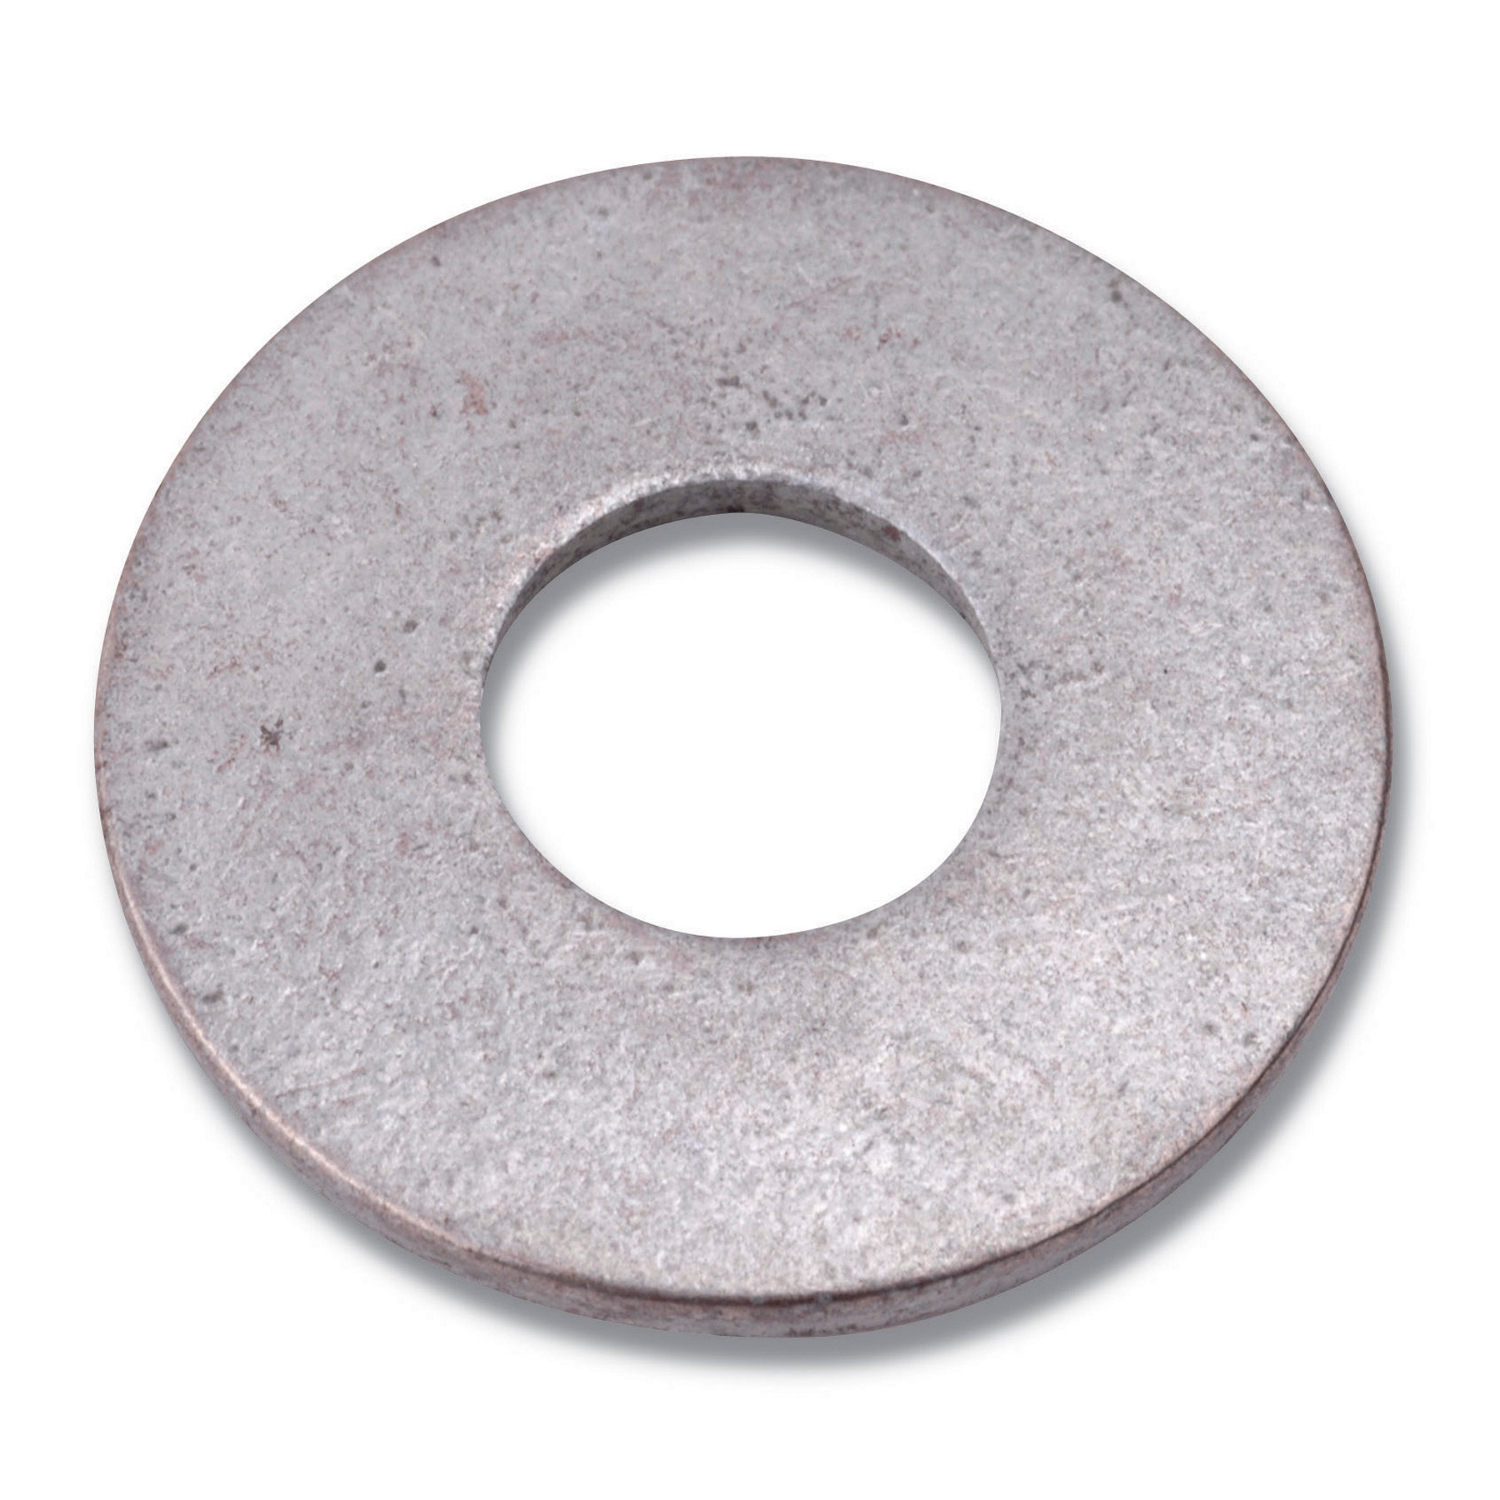 Color-Keyed,60803B,Color-Keyed® 60803B Belleville Compression Washer With Flat Washer, 1/2 in, 0.813 in OD, 0.095 in THK, Steel